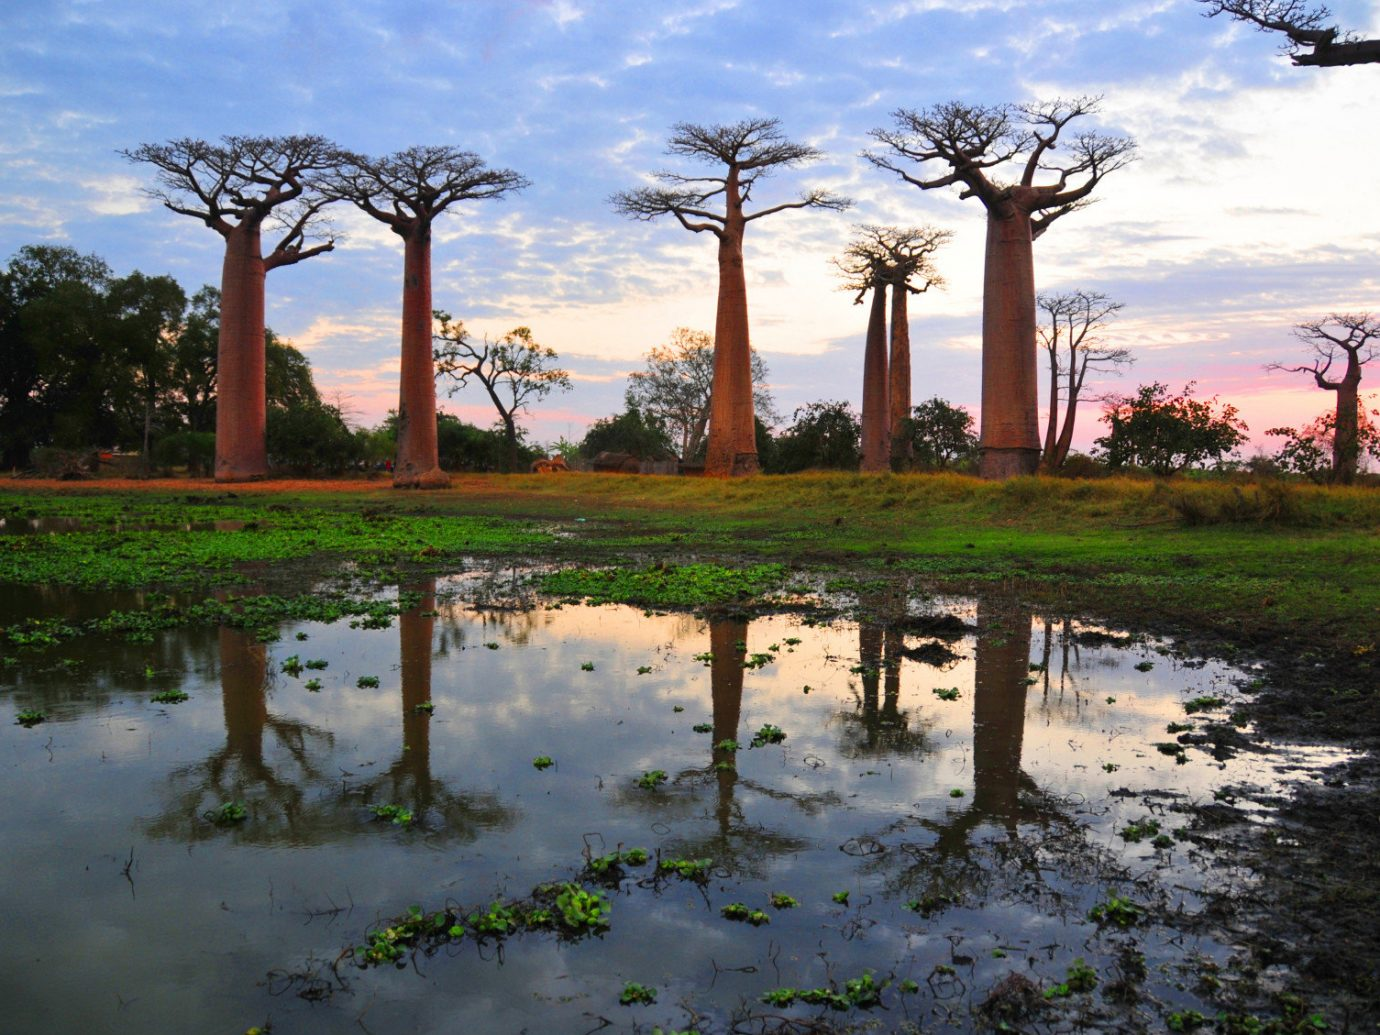 Trip Ideas outdoor sky water tree plant vacation arecales woody plant Ruins rural area savanna landscape flower park reflection Garden wetland several sandy